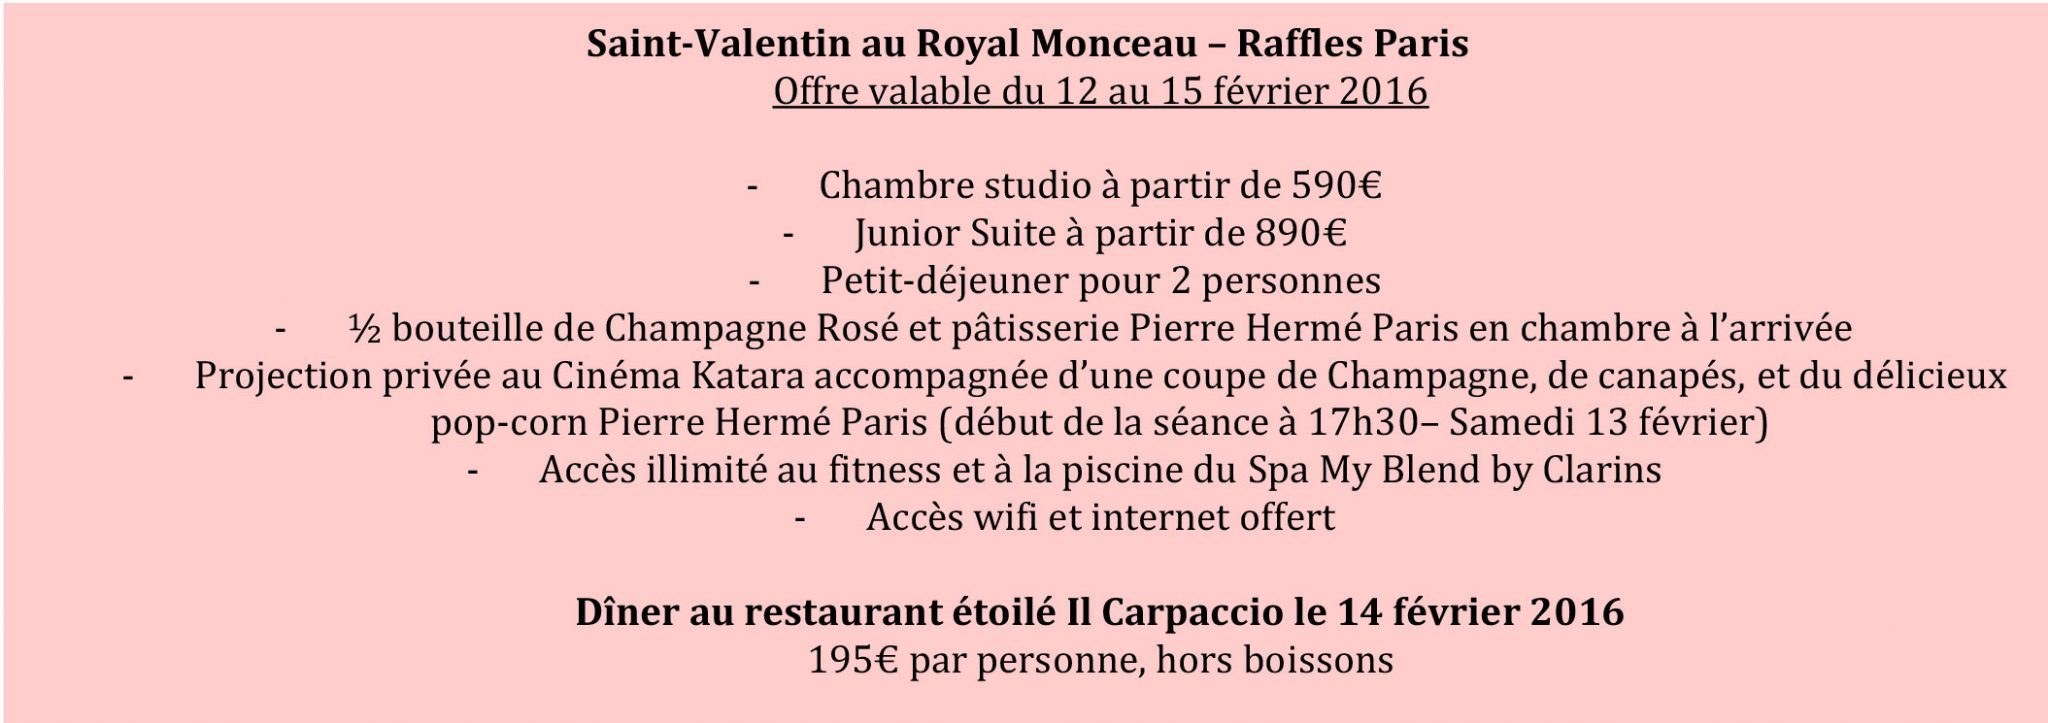 Saint-Valentin-au-Royal-Monceau---Raffles-Paris-2